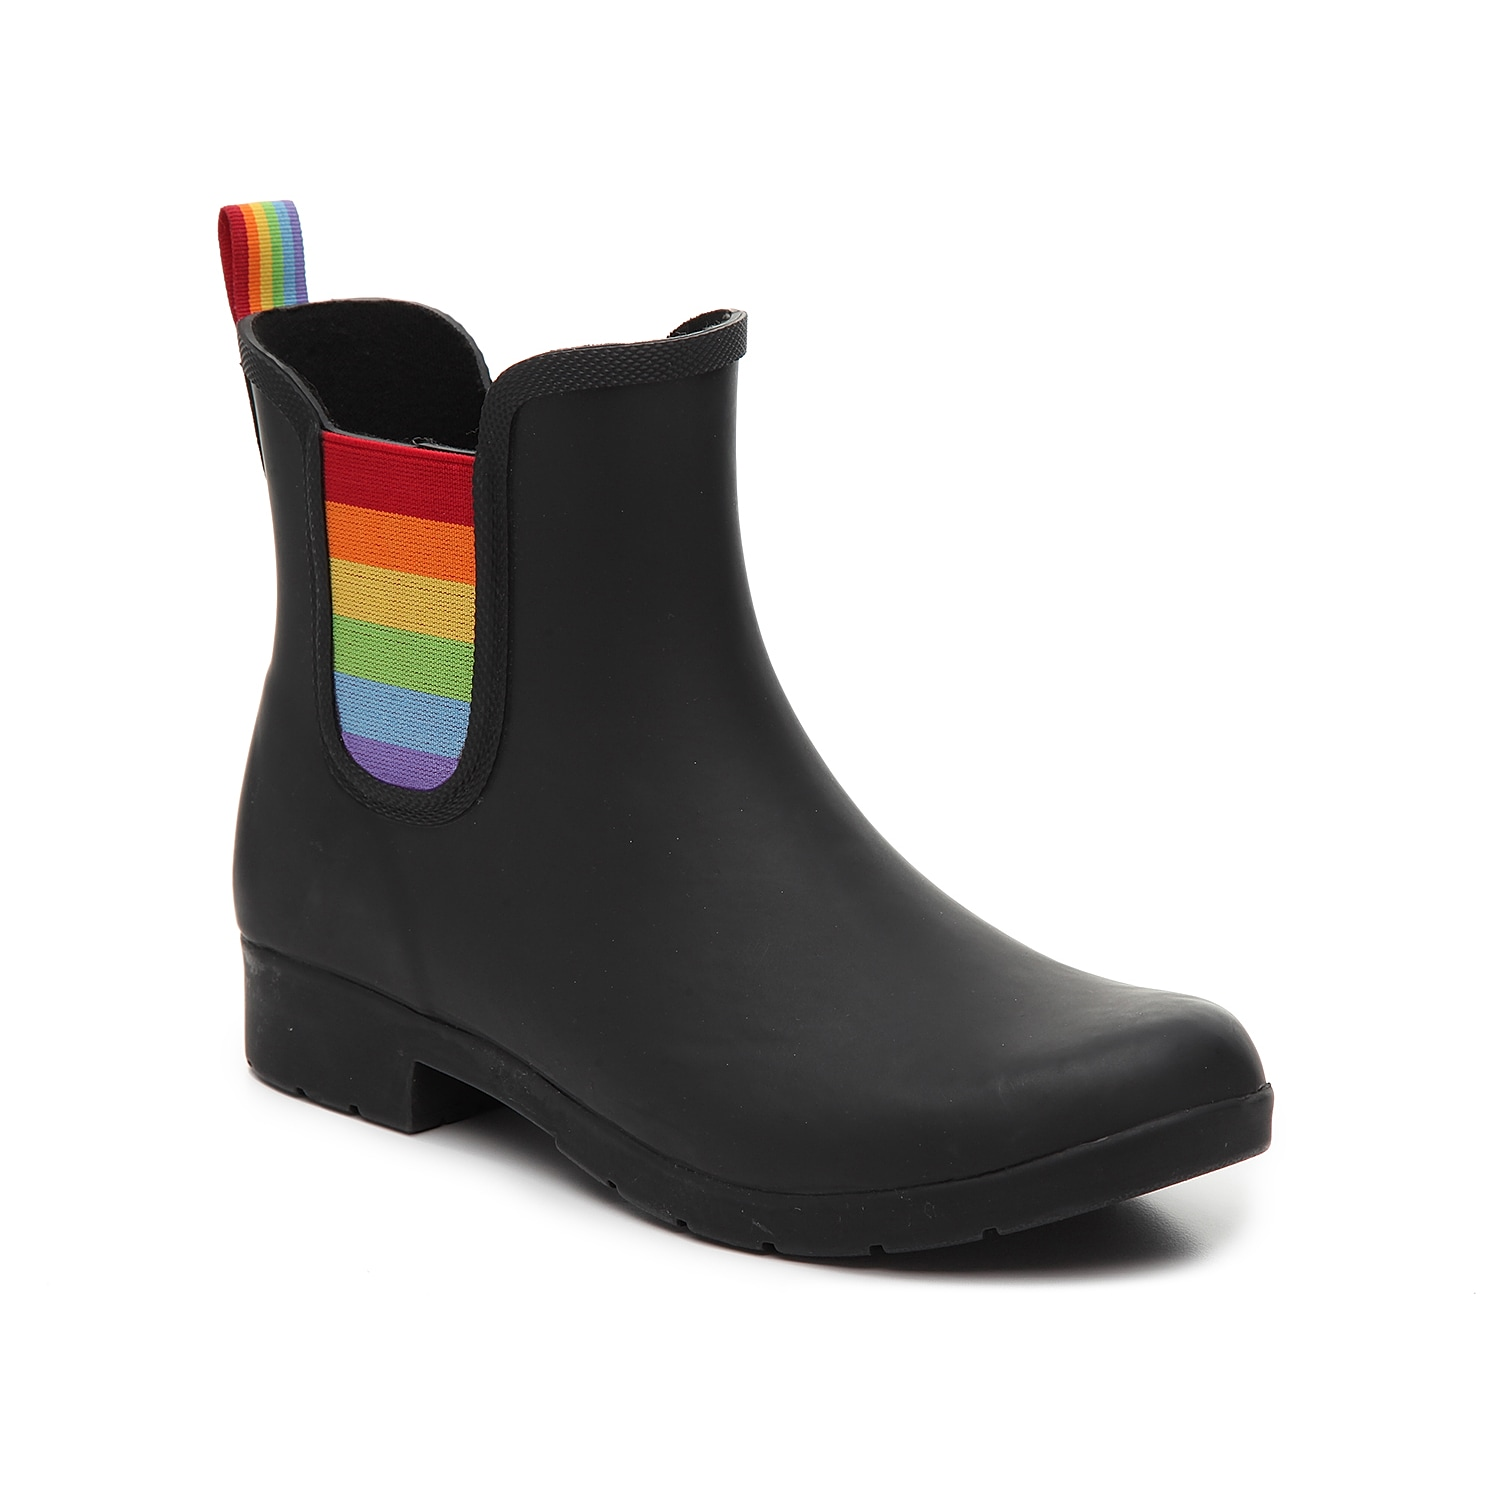 Splash around in style with the Eastlake Pride rain boot from Chooka. Featuring a Chelsea boot design with rainbow gores, this waterproof bootie will become your new go-to for rainy days.